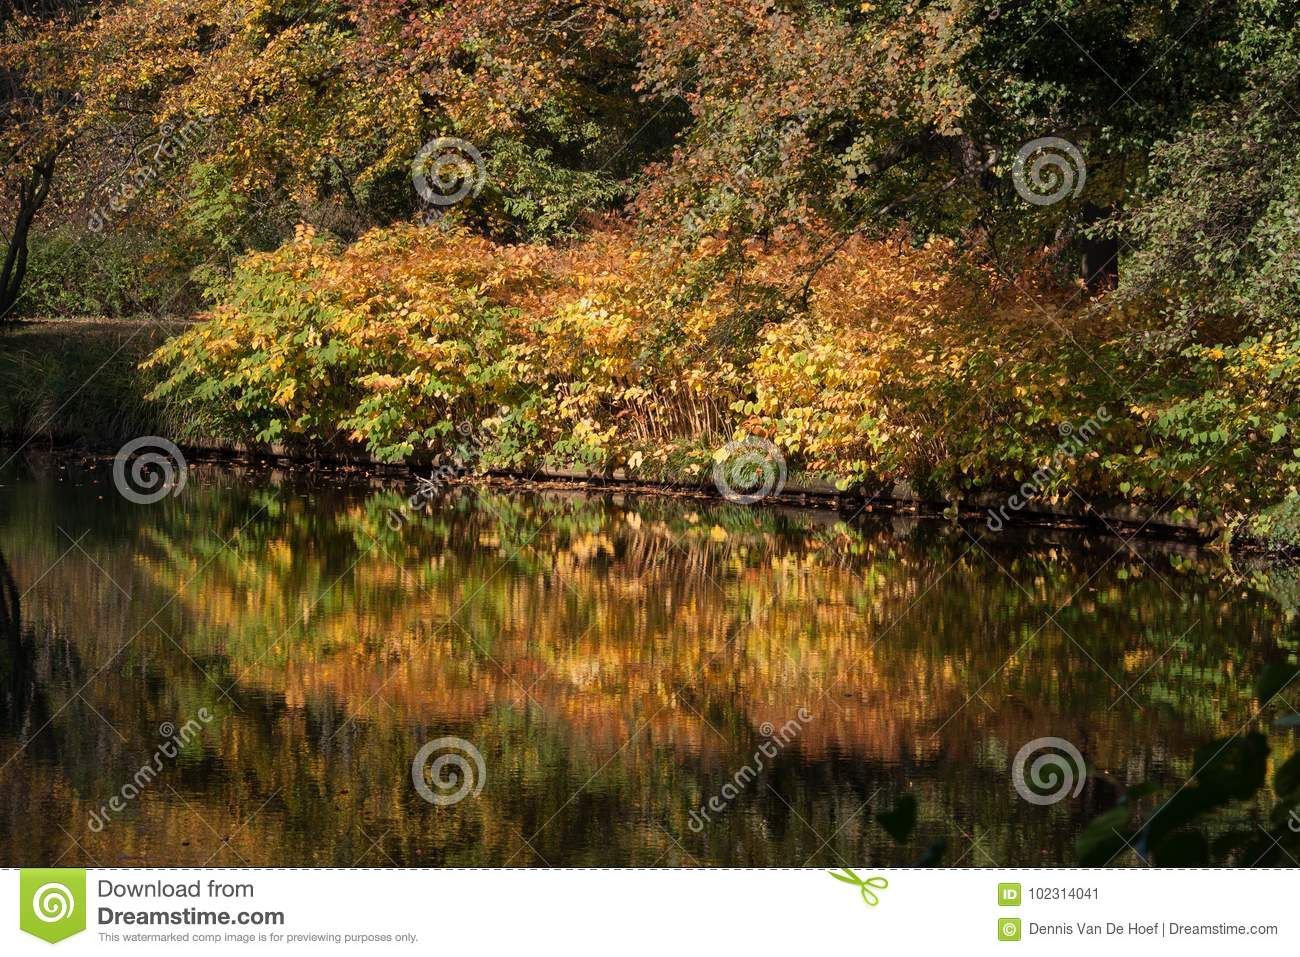 Colourful autumn trees reflecting in water.